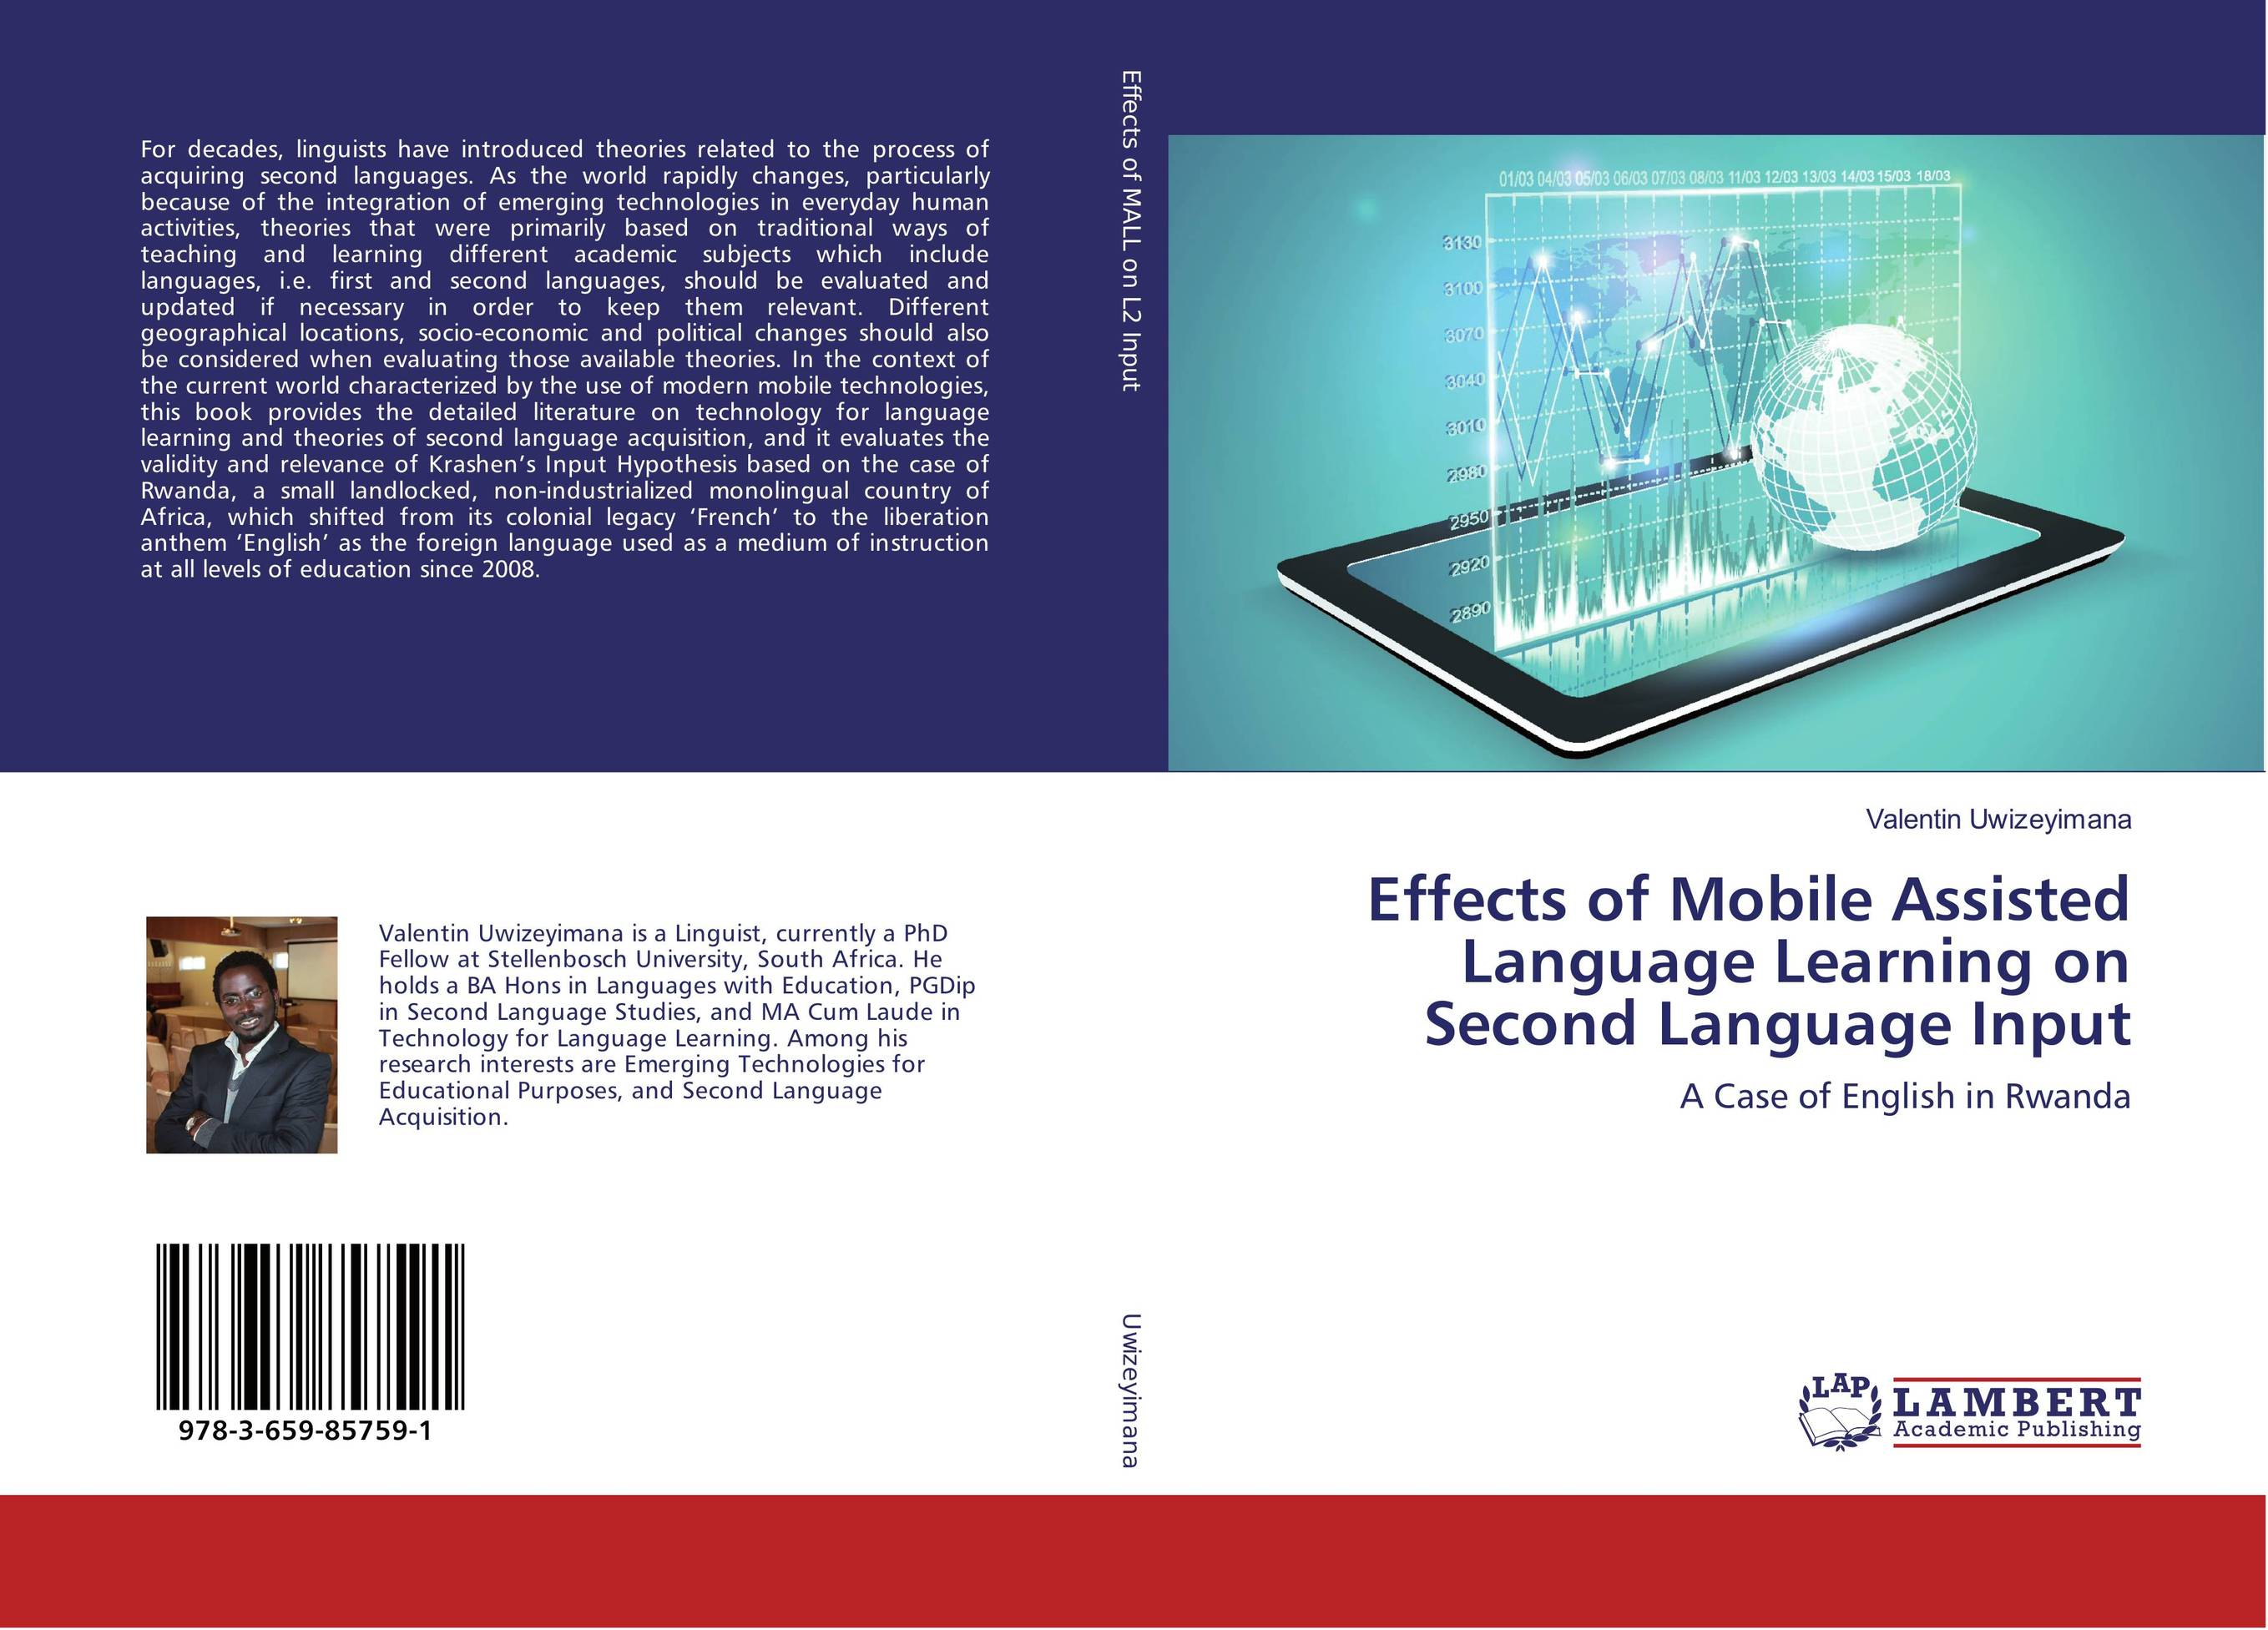 Effects of Mobile Assisted Language Learning on Second Language Input theories and practices of human resource management from quran